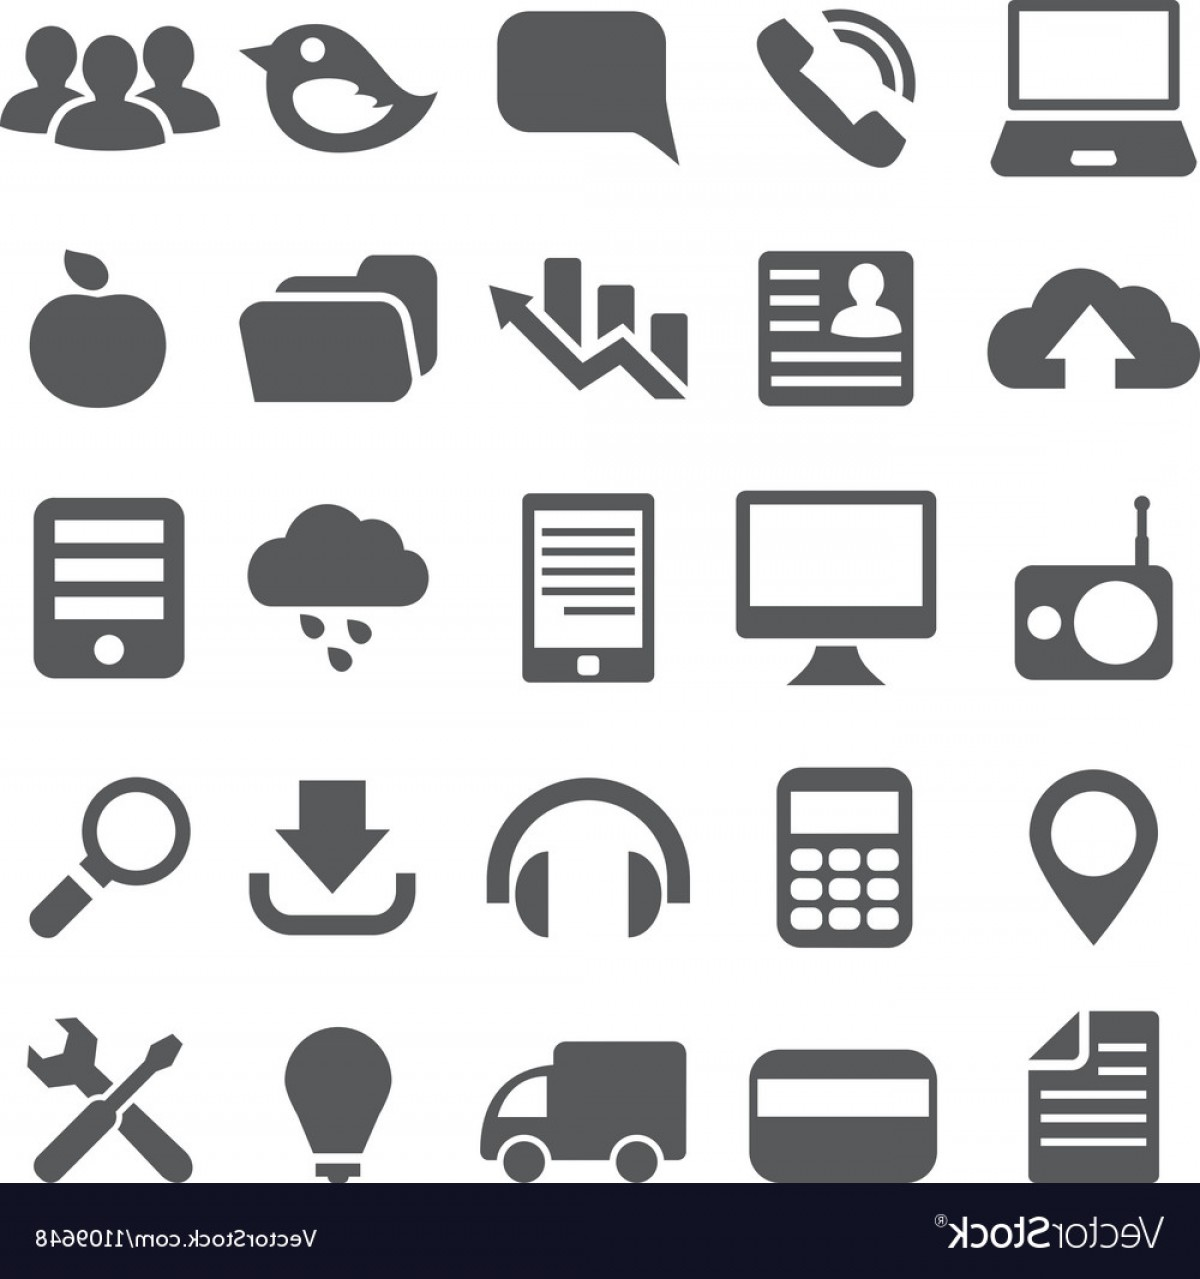 Vector Icons For Designers: Set Gray Simple Icons For Web Design Vector